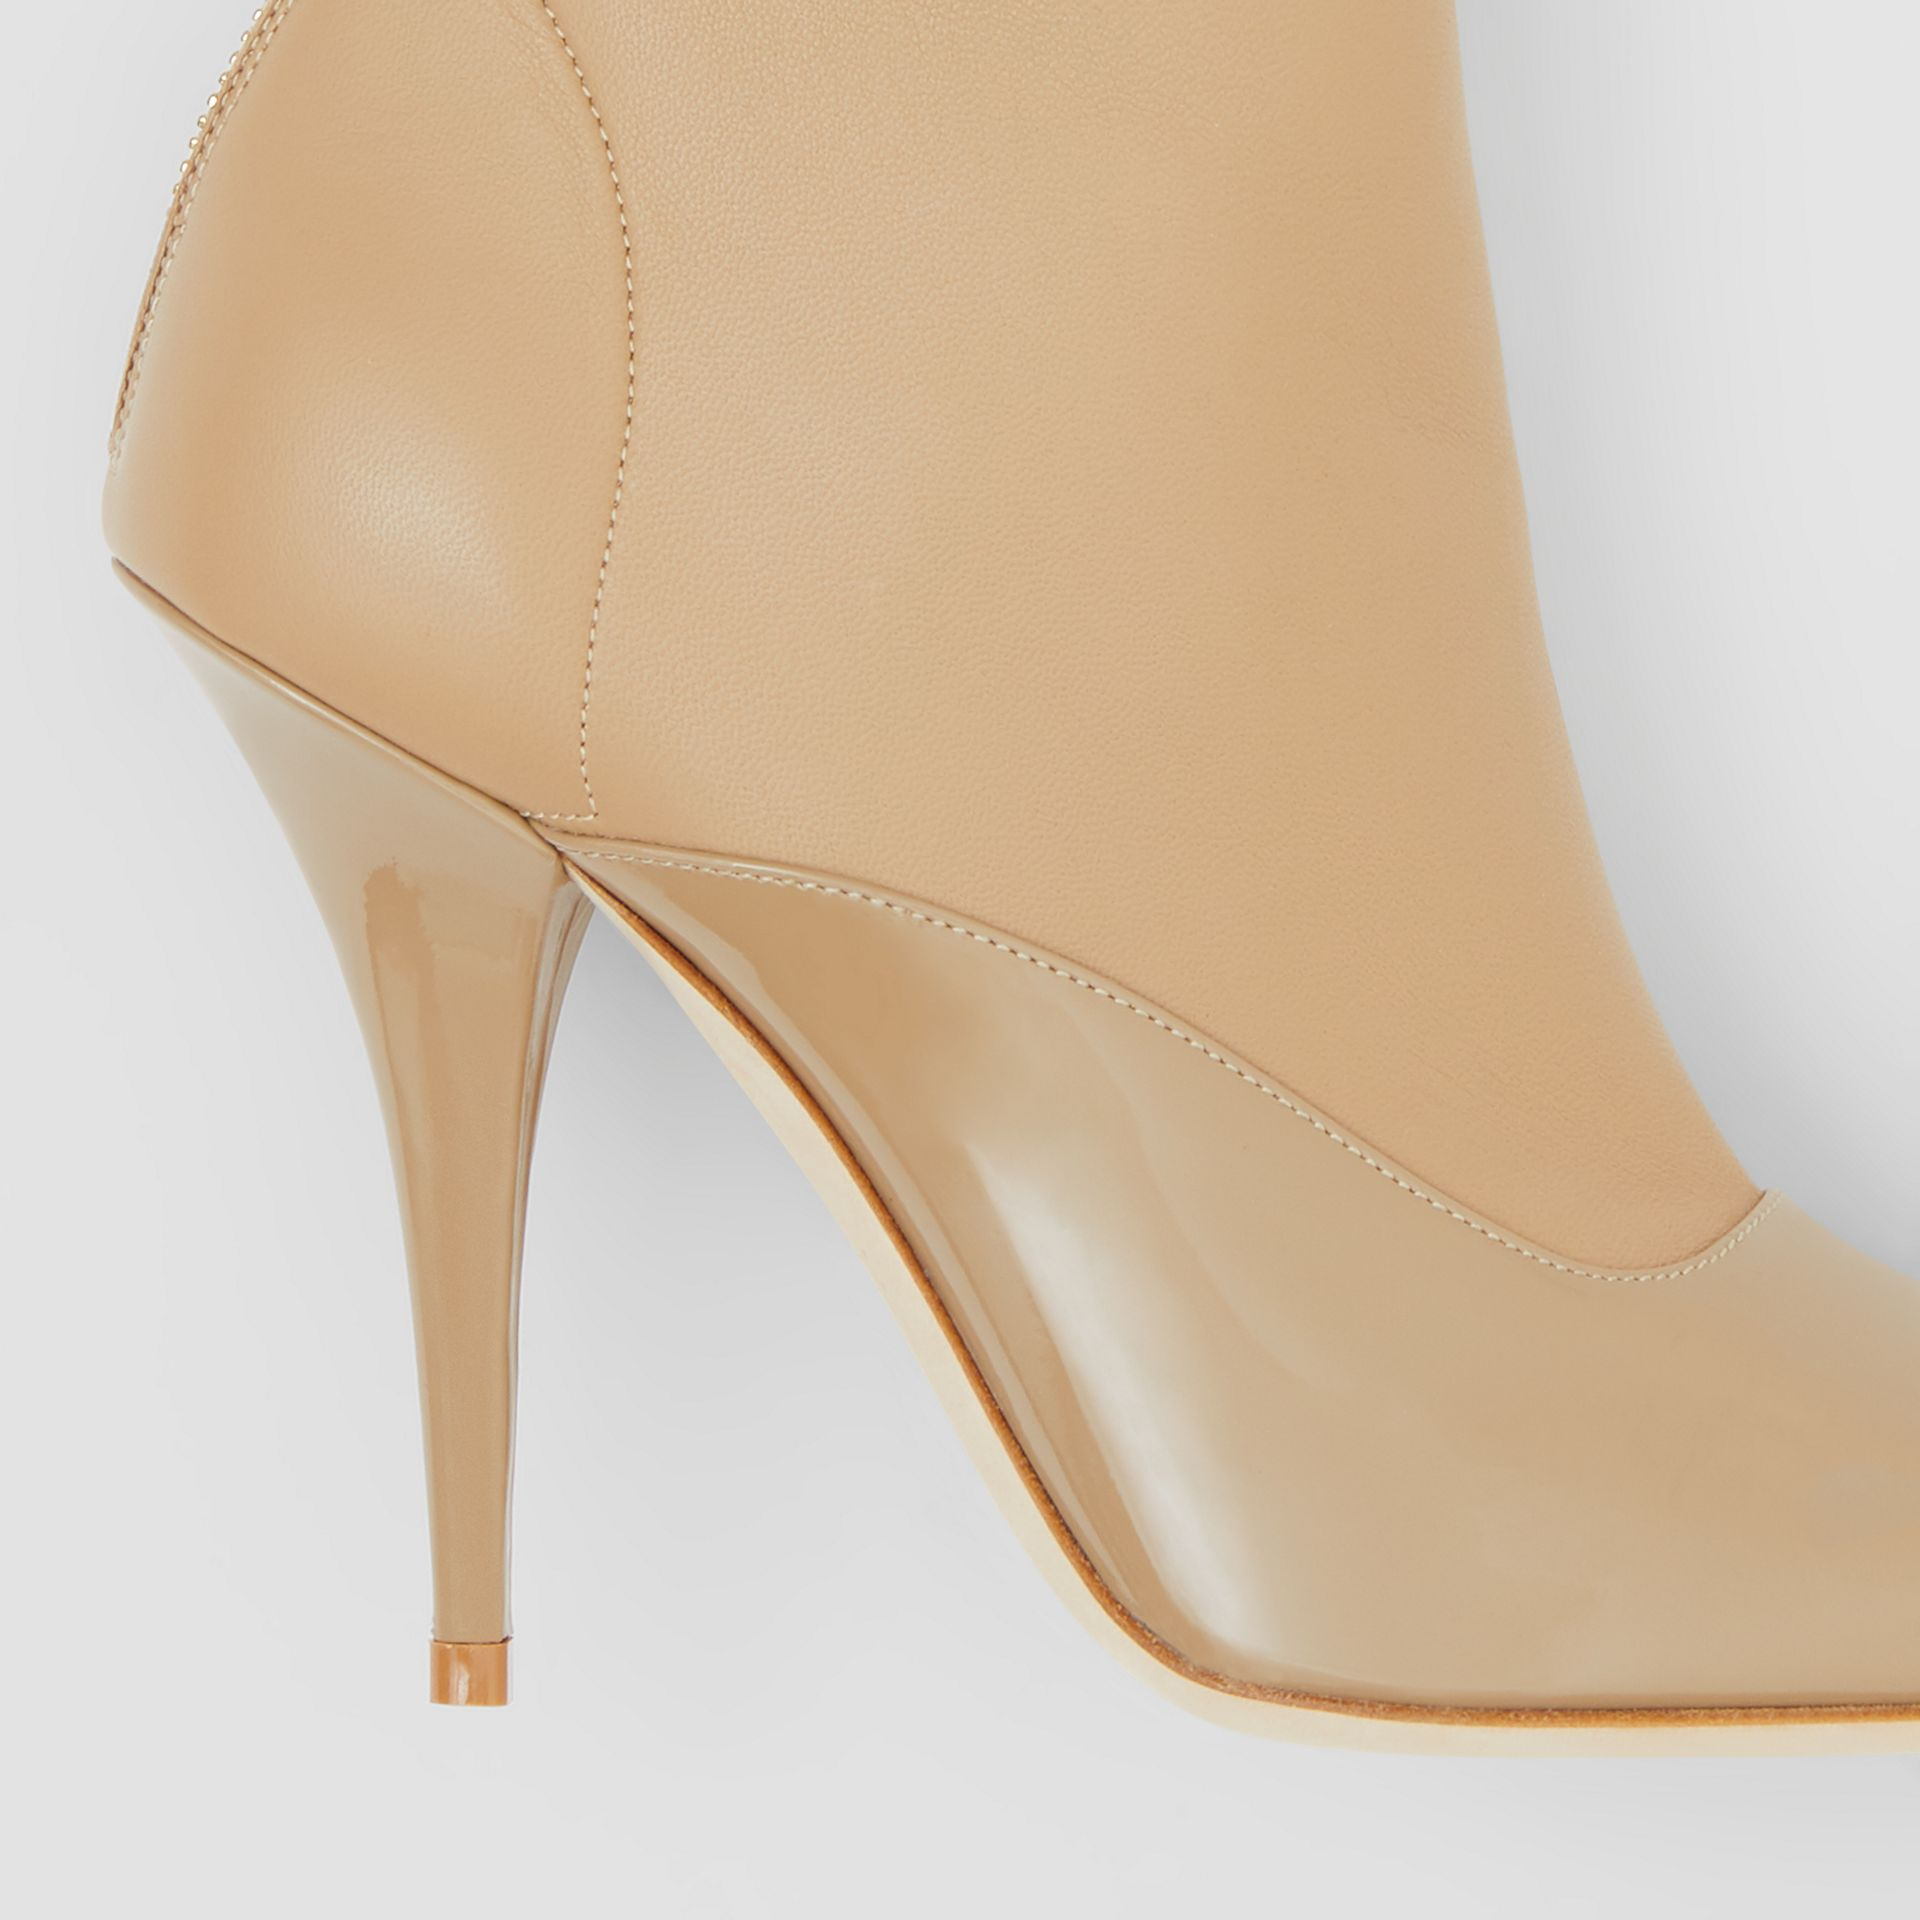 Lambskin and Patent Leather Ankle Boots in Dark Honey - Women | Burberry - gallery image 1